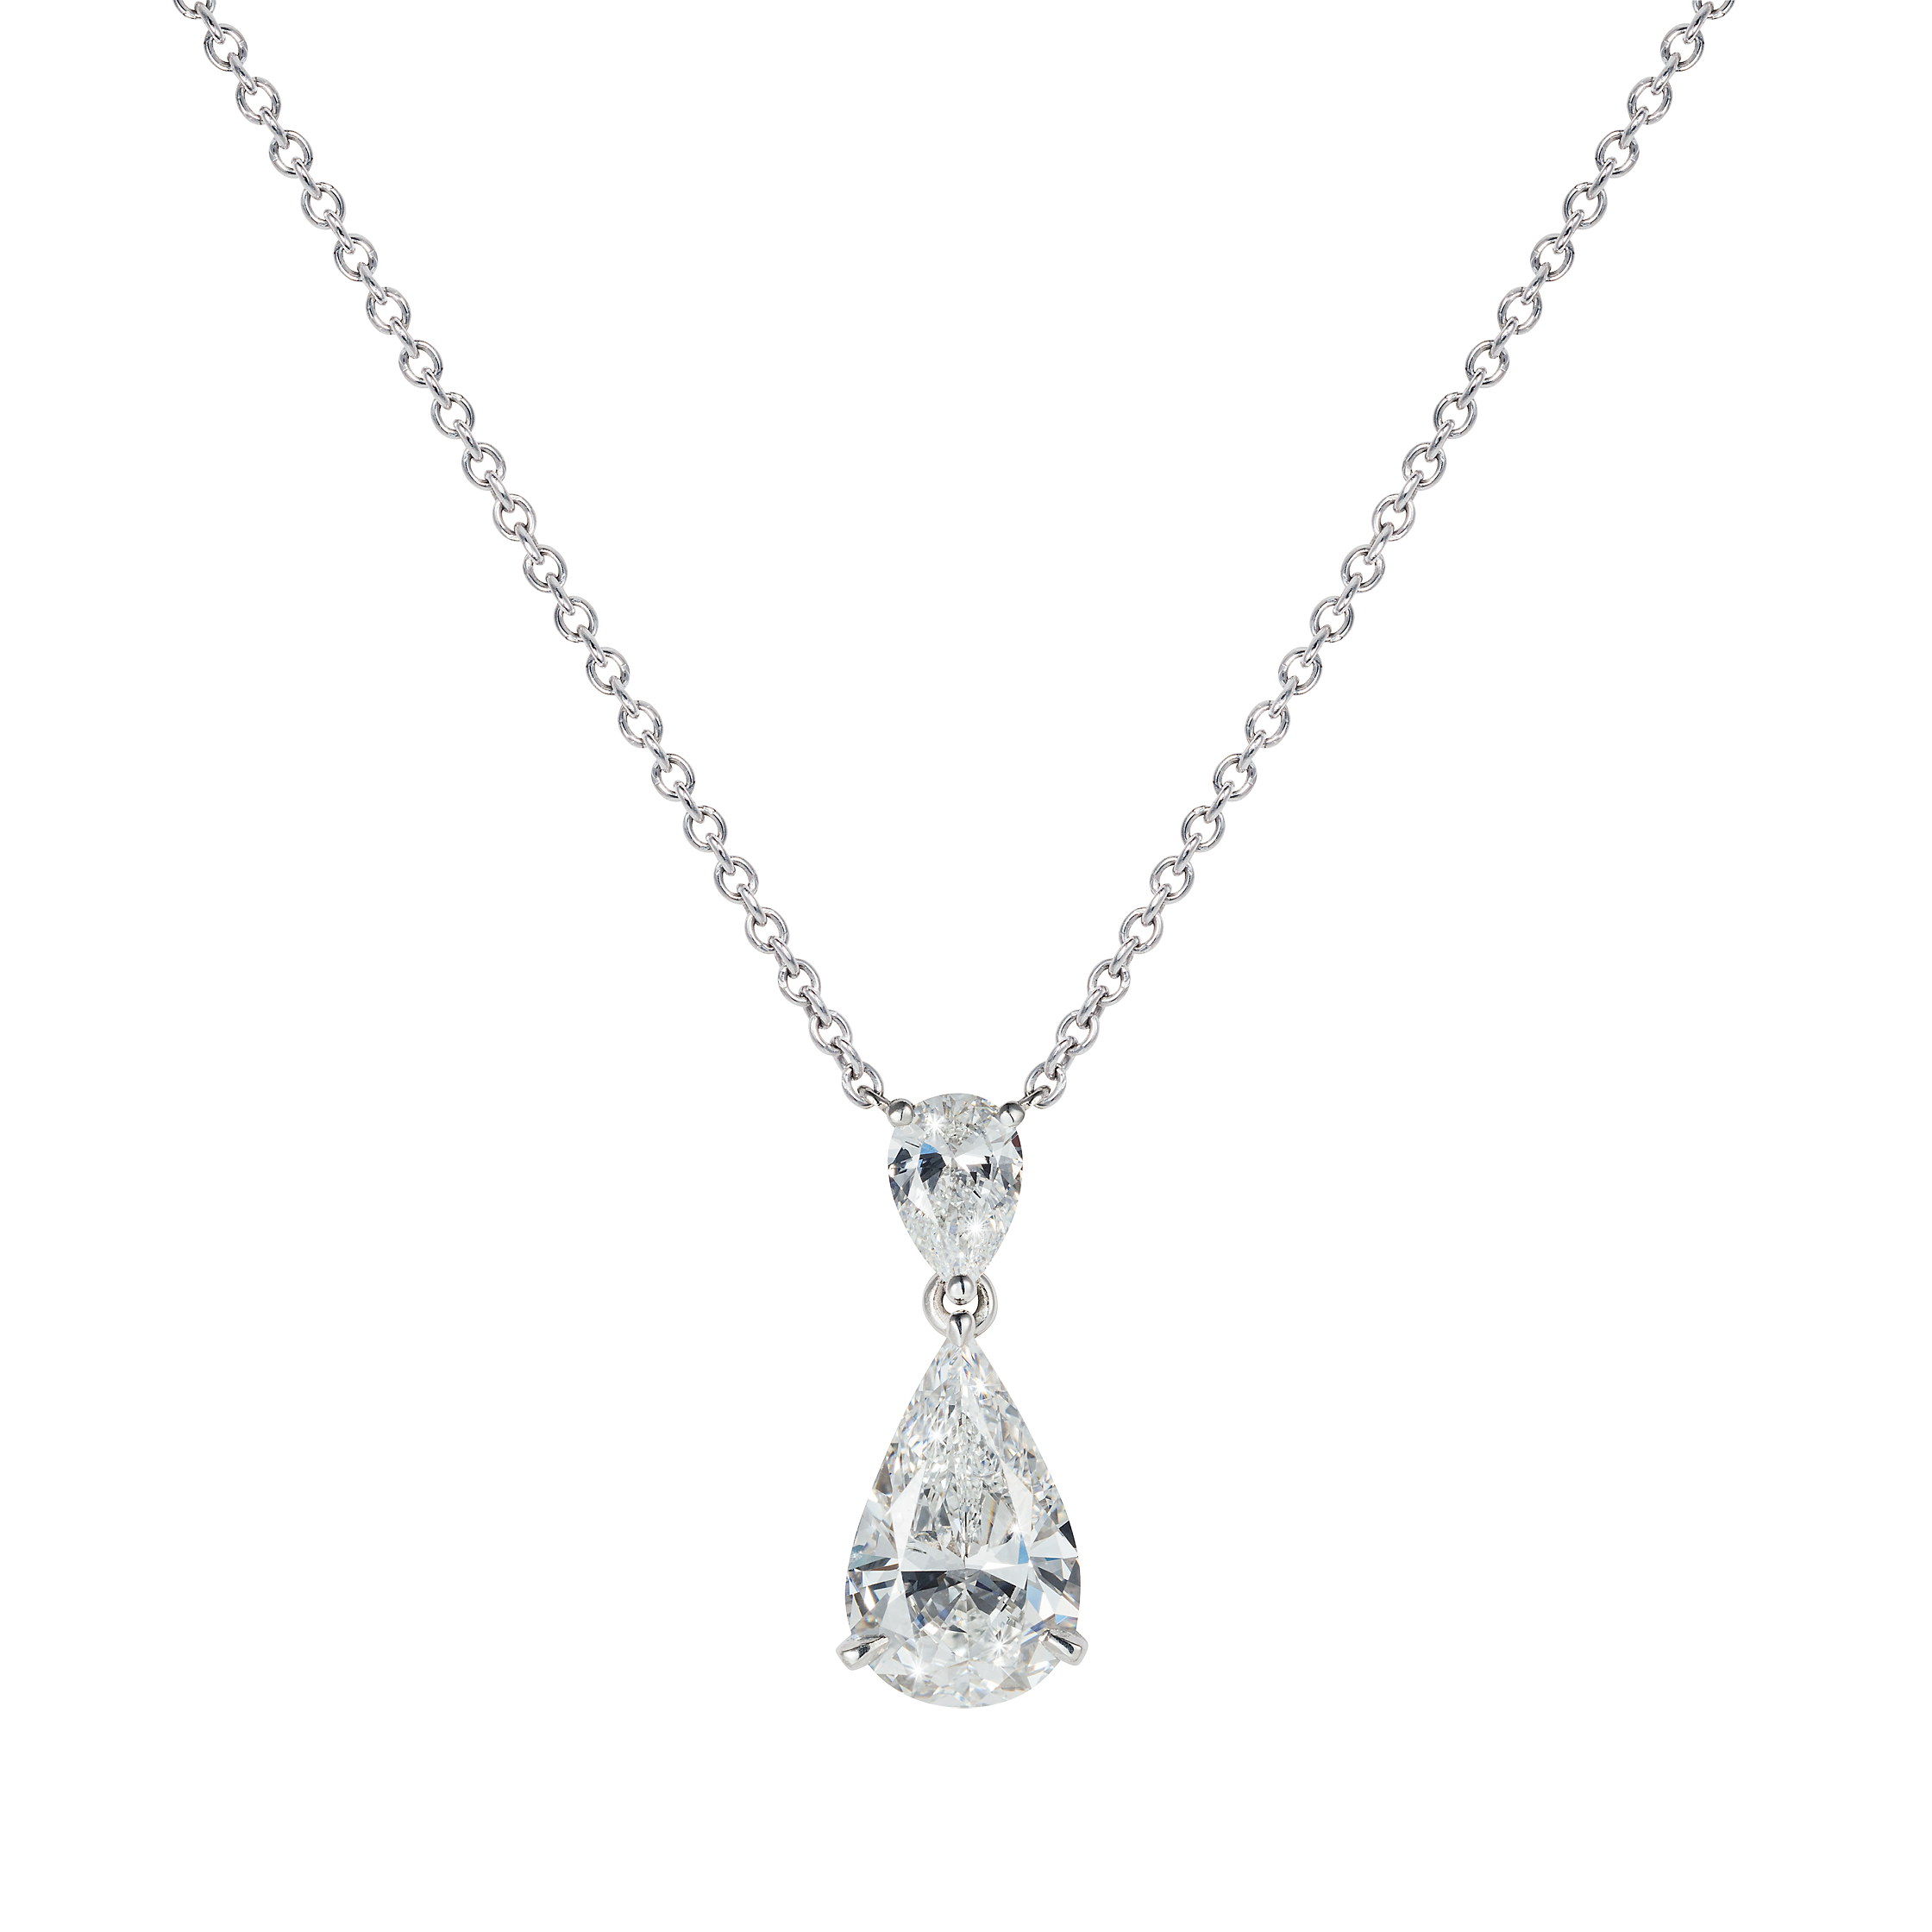 necklace products enlarged pear necklaces jewelry harry shaped winston diamond cross pendant